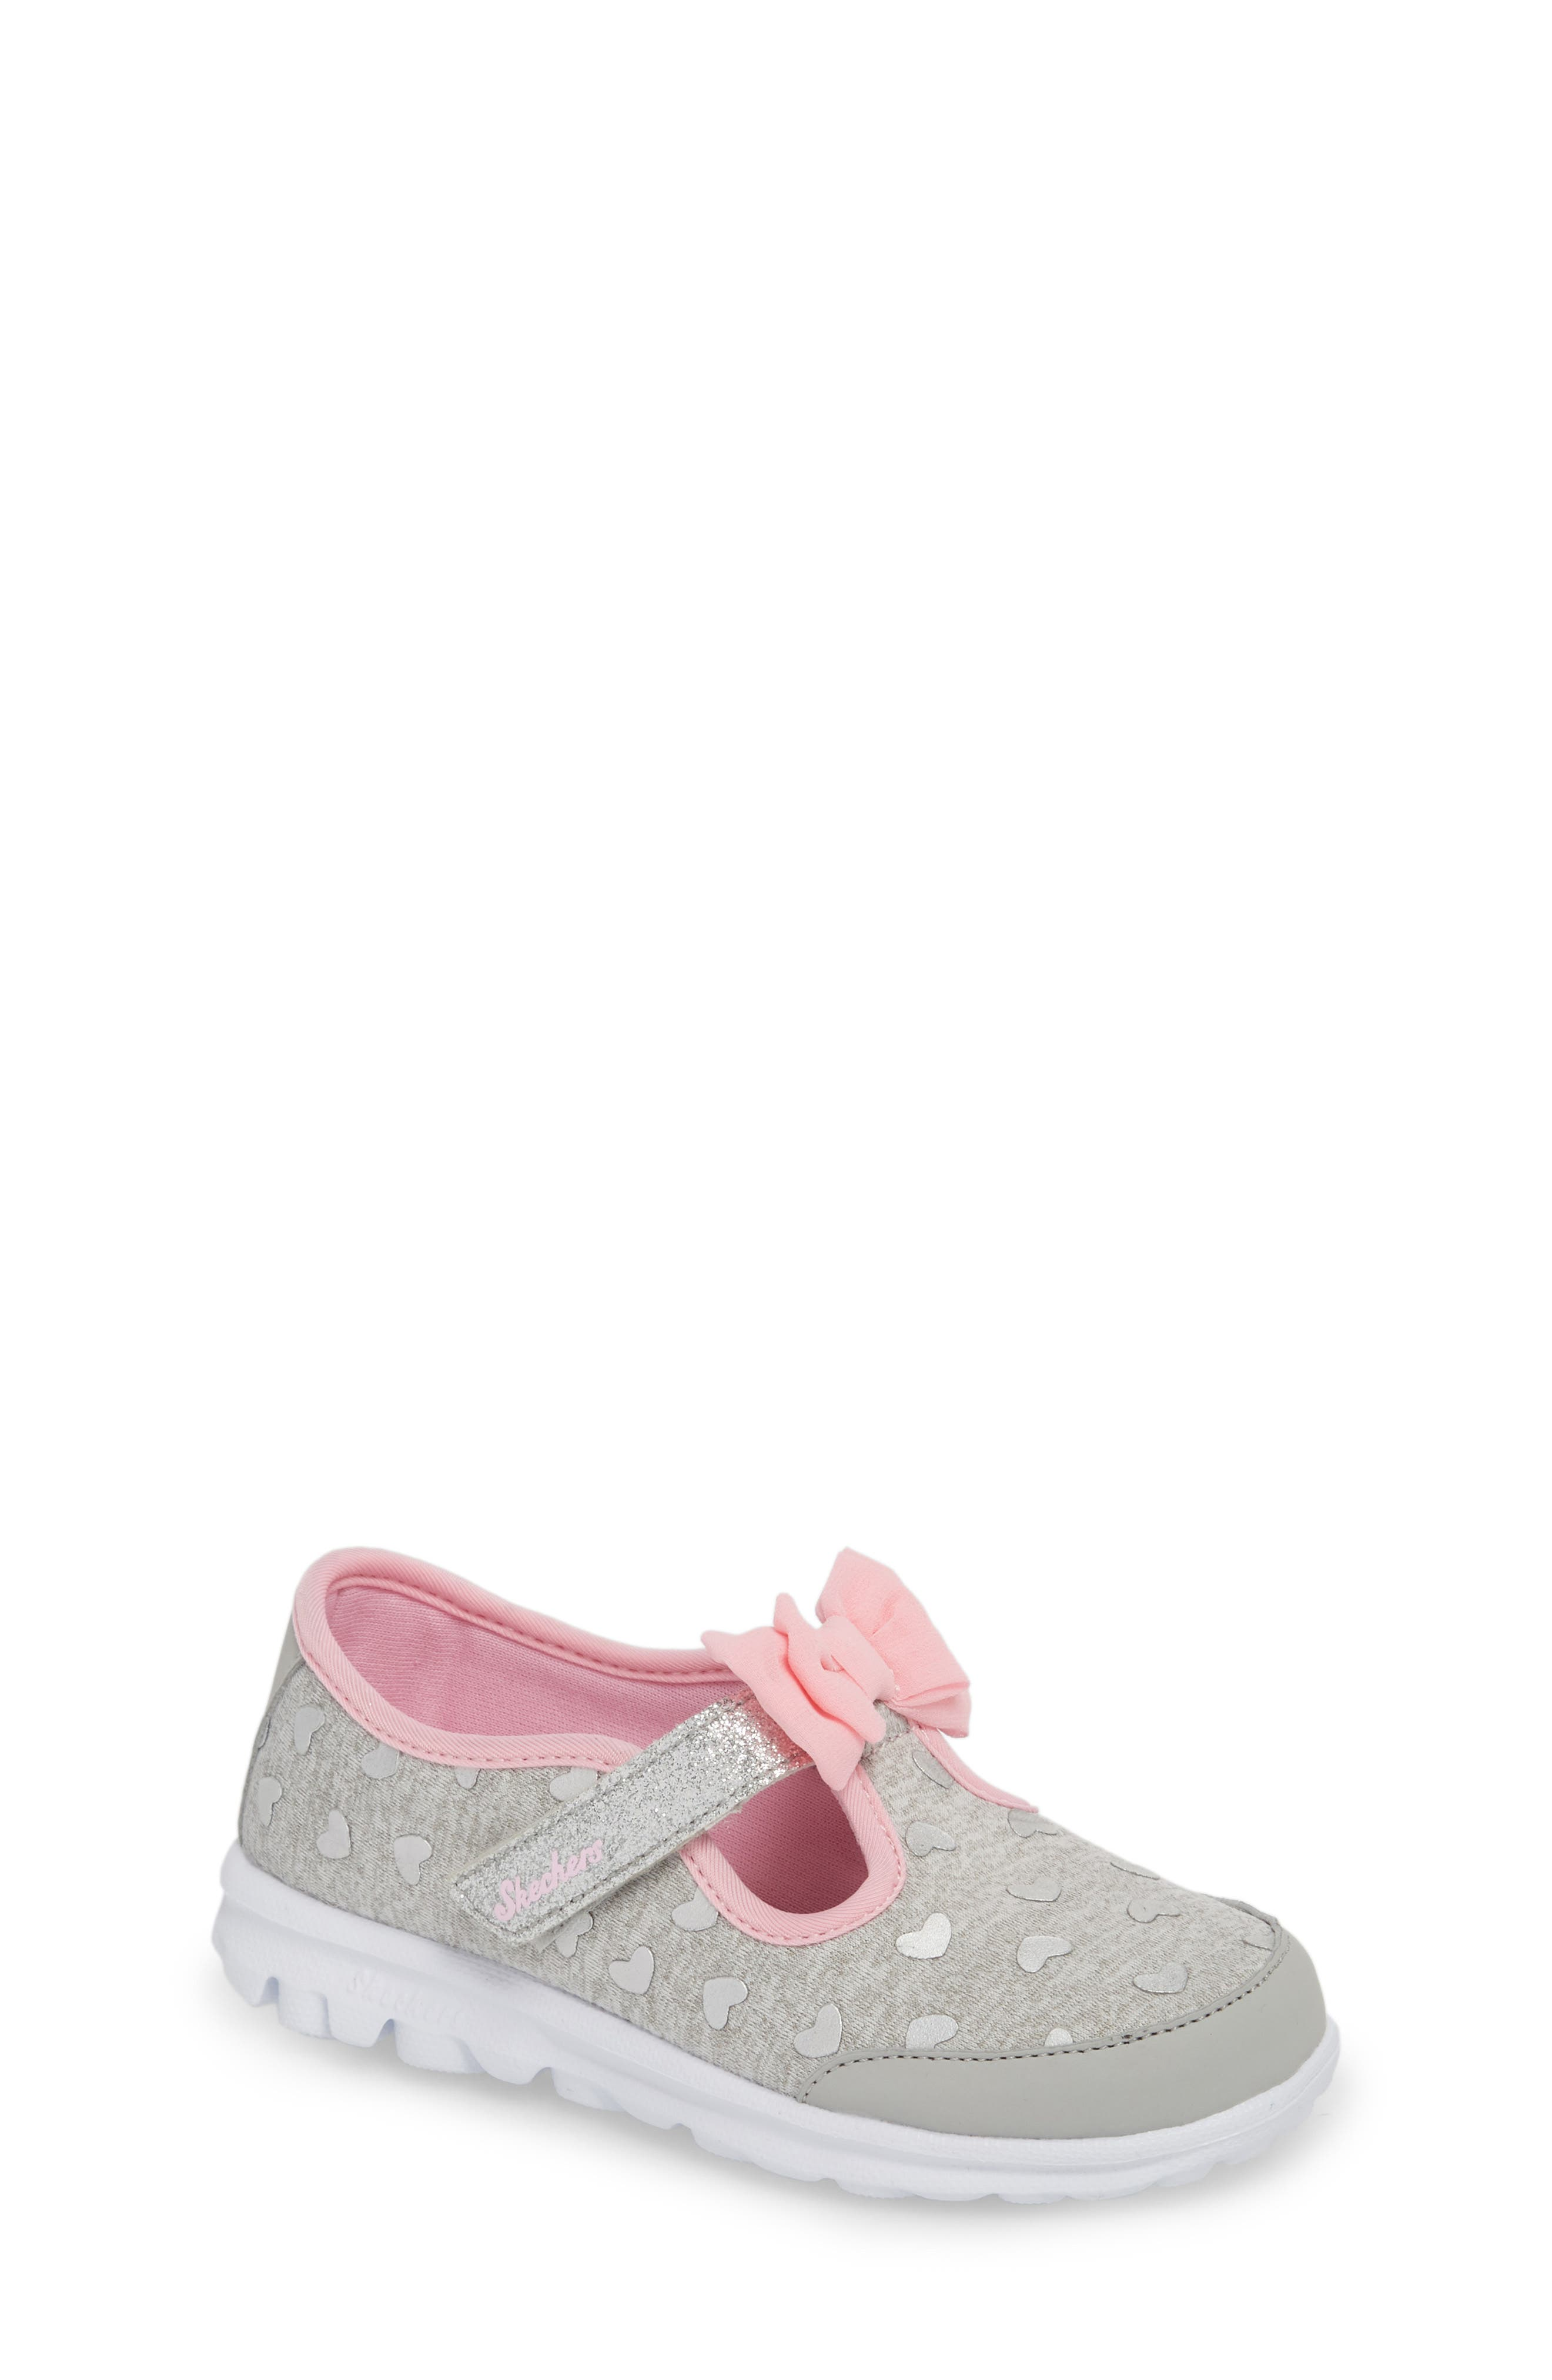 Go Walk Slip-On Sneaker,                         Main,                         color, Grey/ Pink Heather Jersey